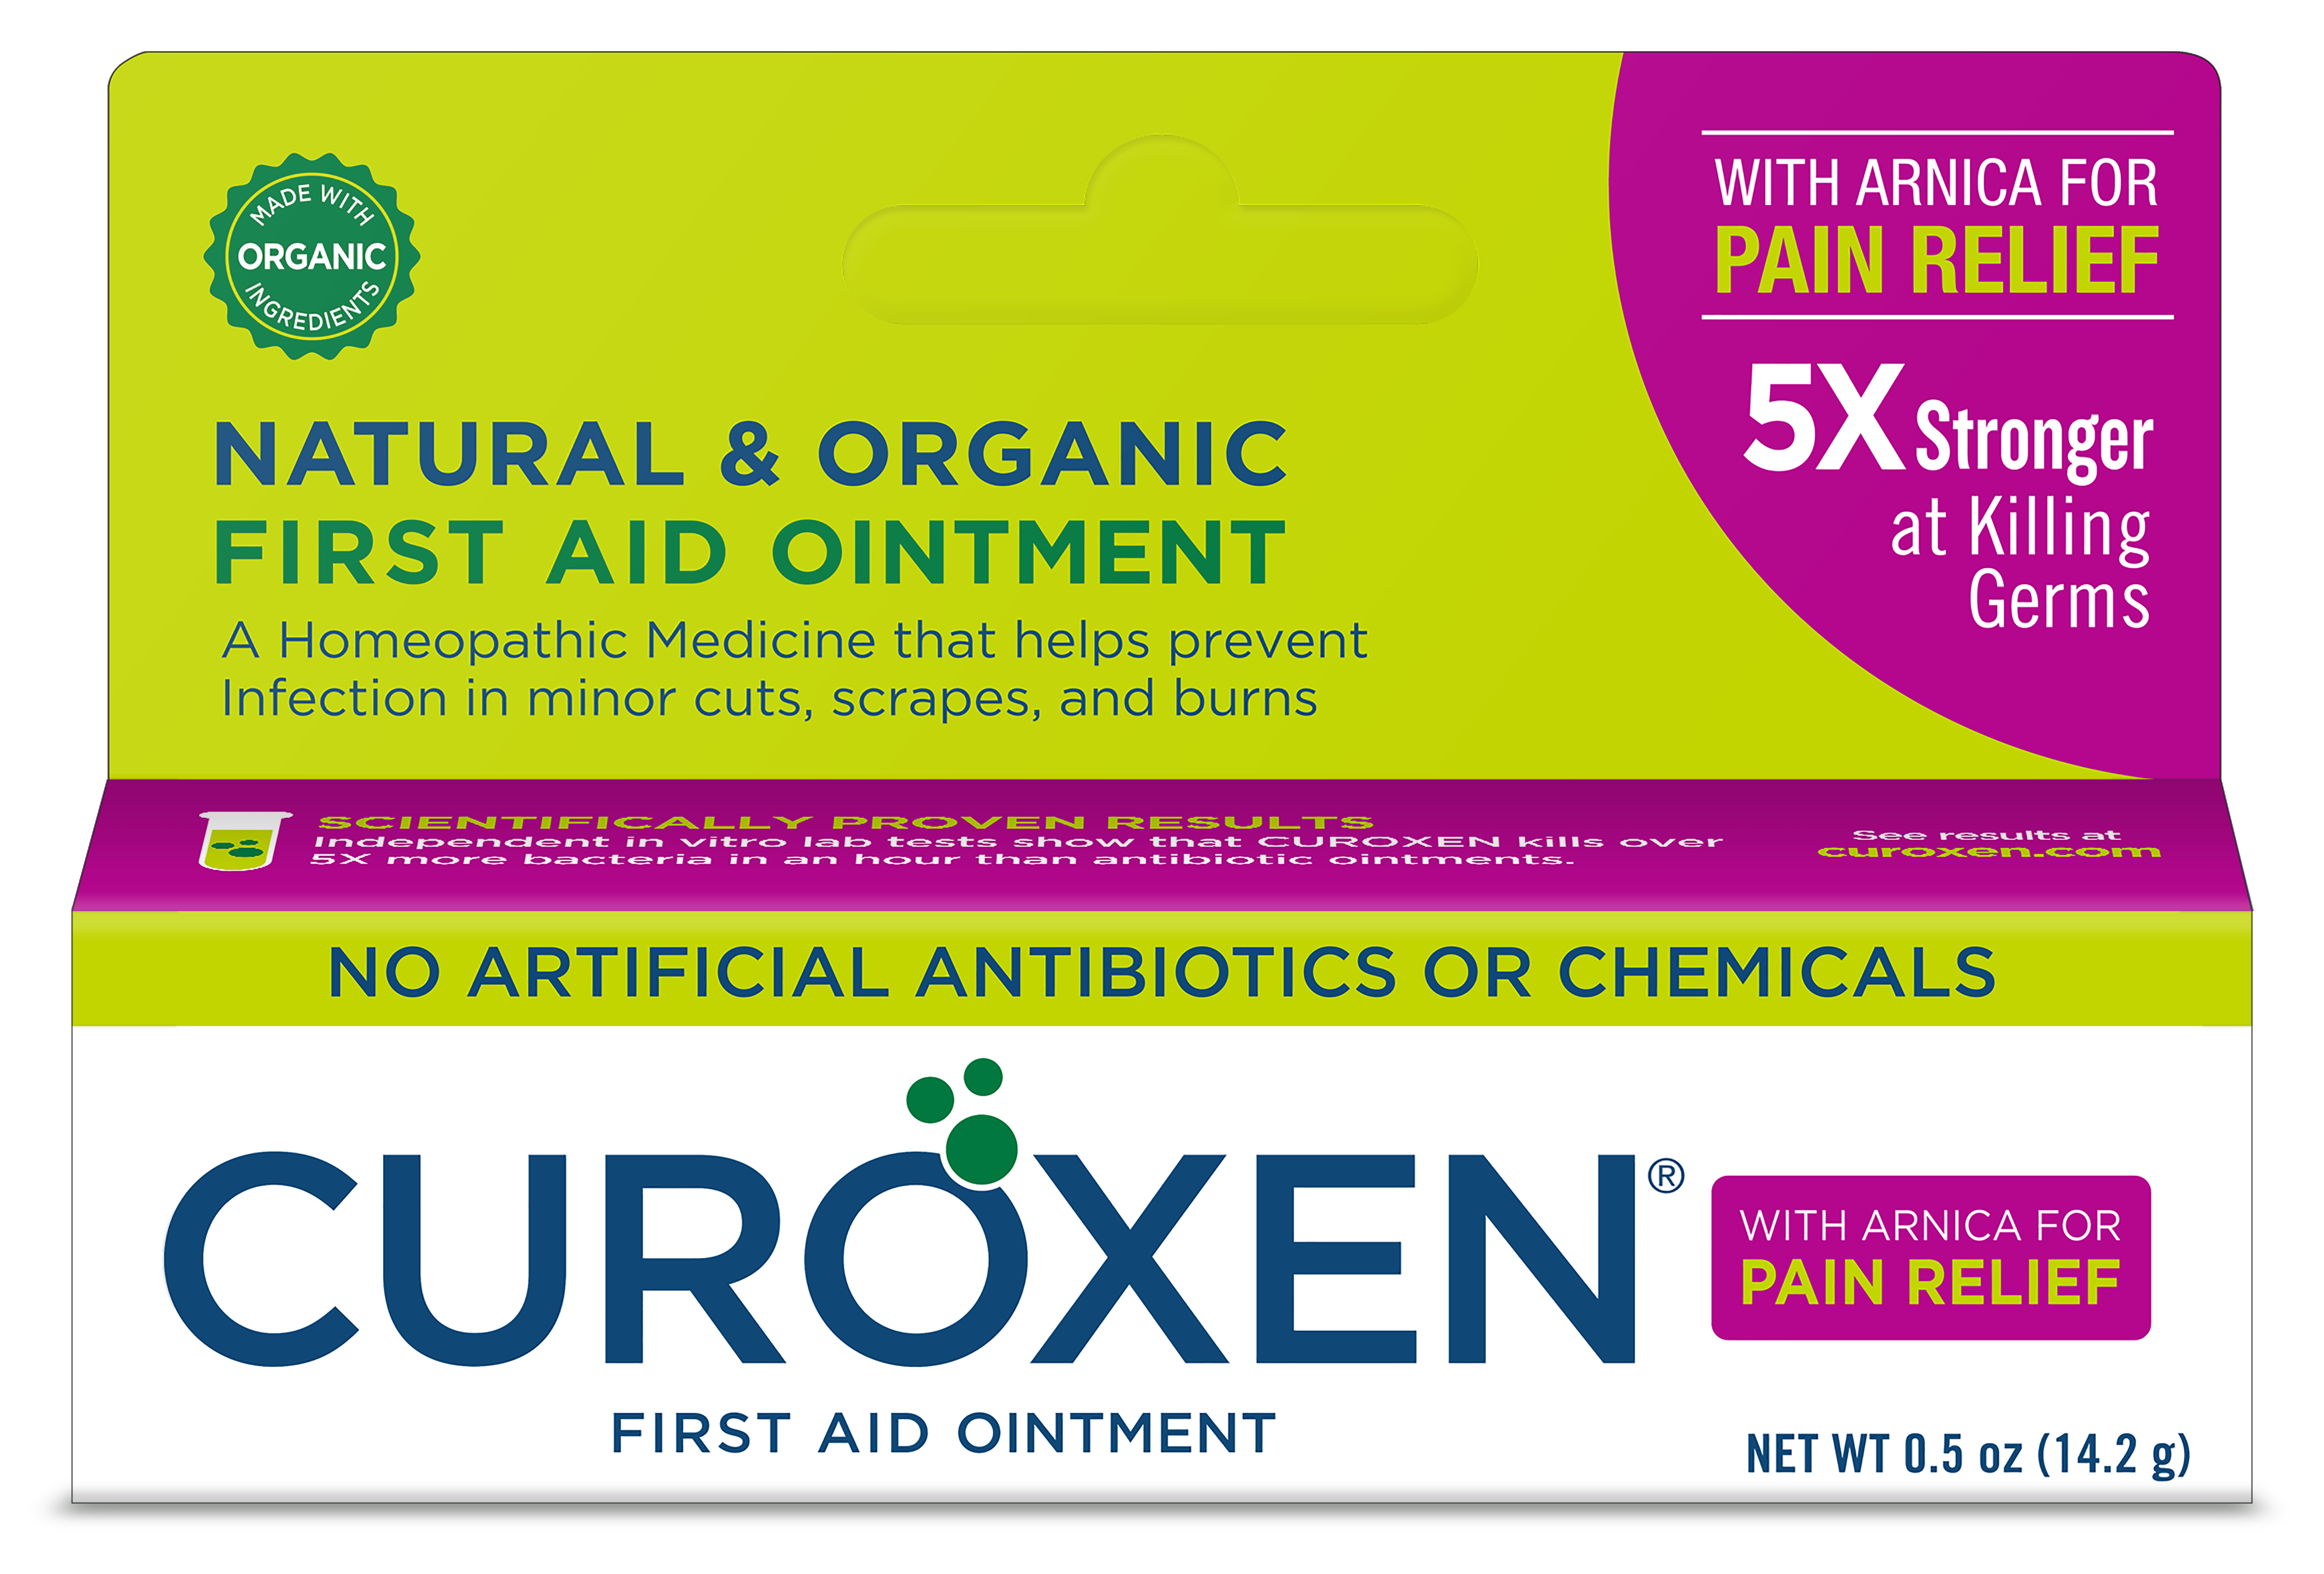 Natural & Organic First Aid Ointment With Arnica For Pain